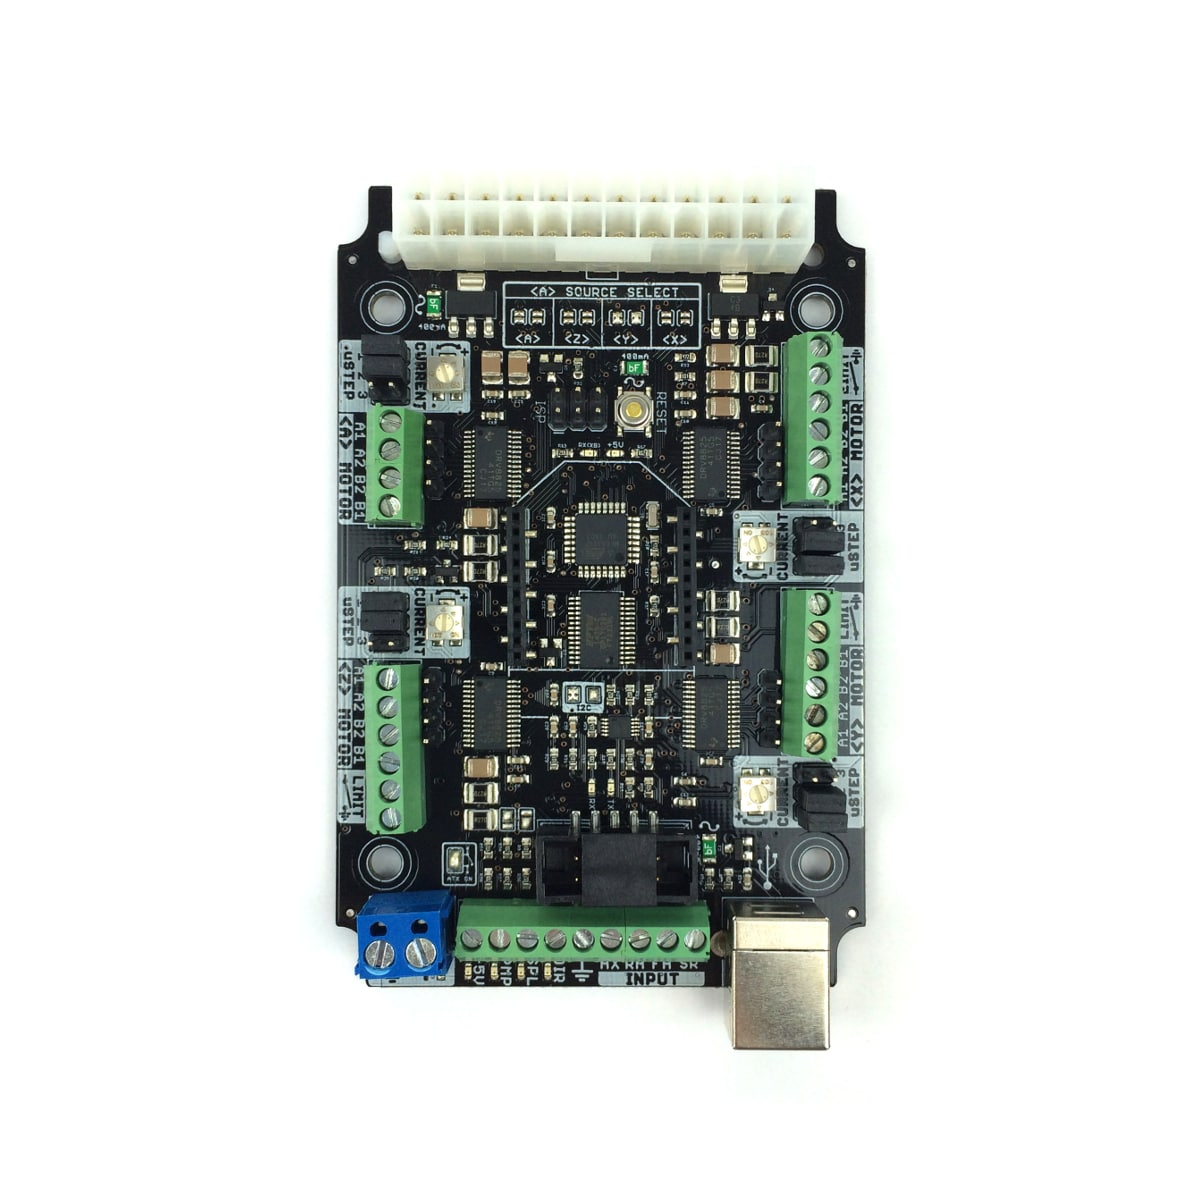 CNC xPro V3 GRBL Controller Board – From Ooznest